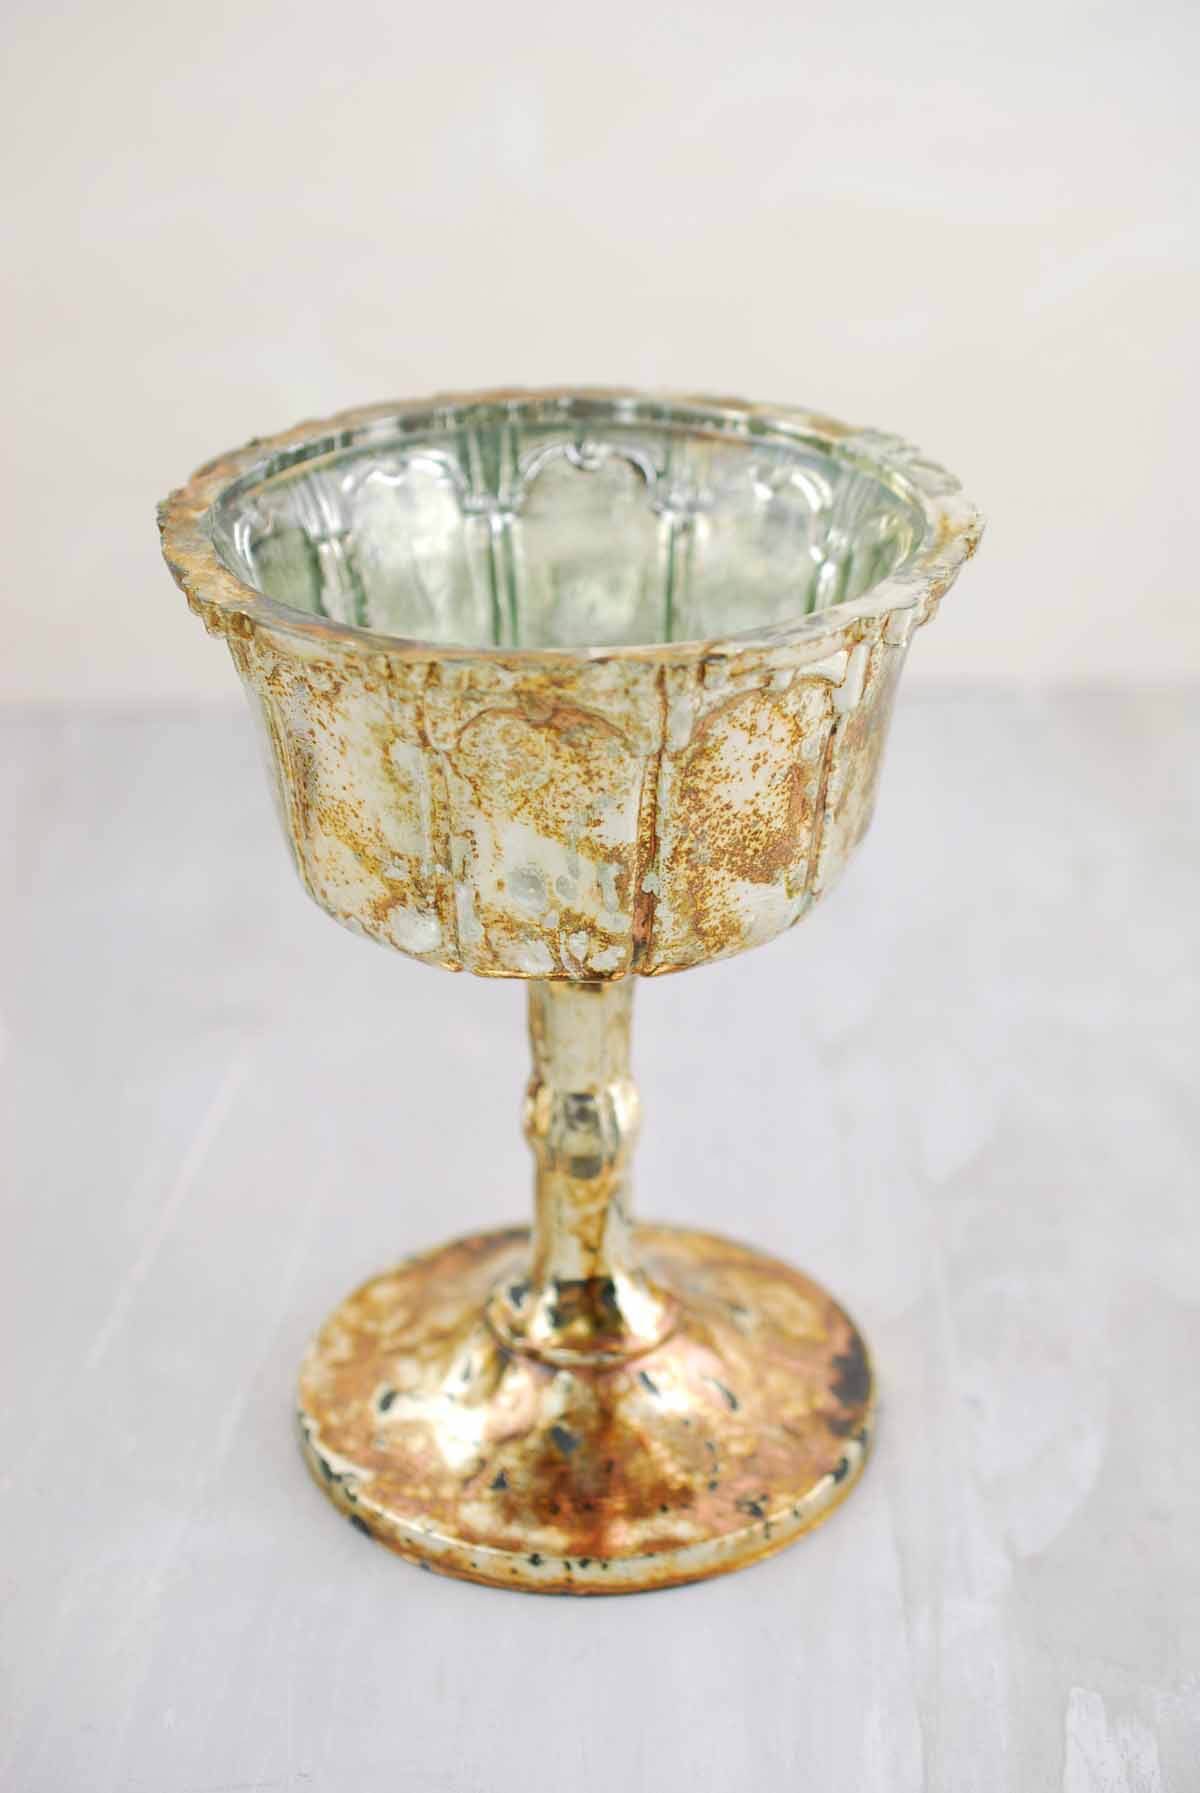 Mercury Glass Fairytale Compote